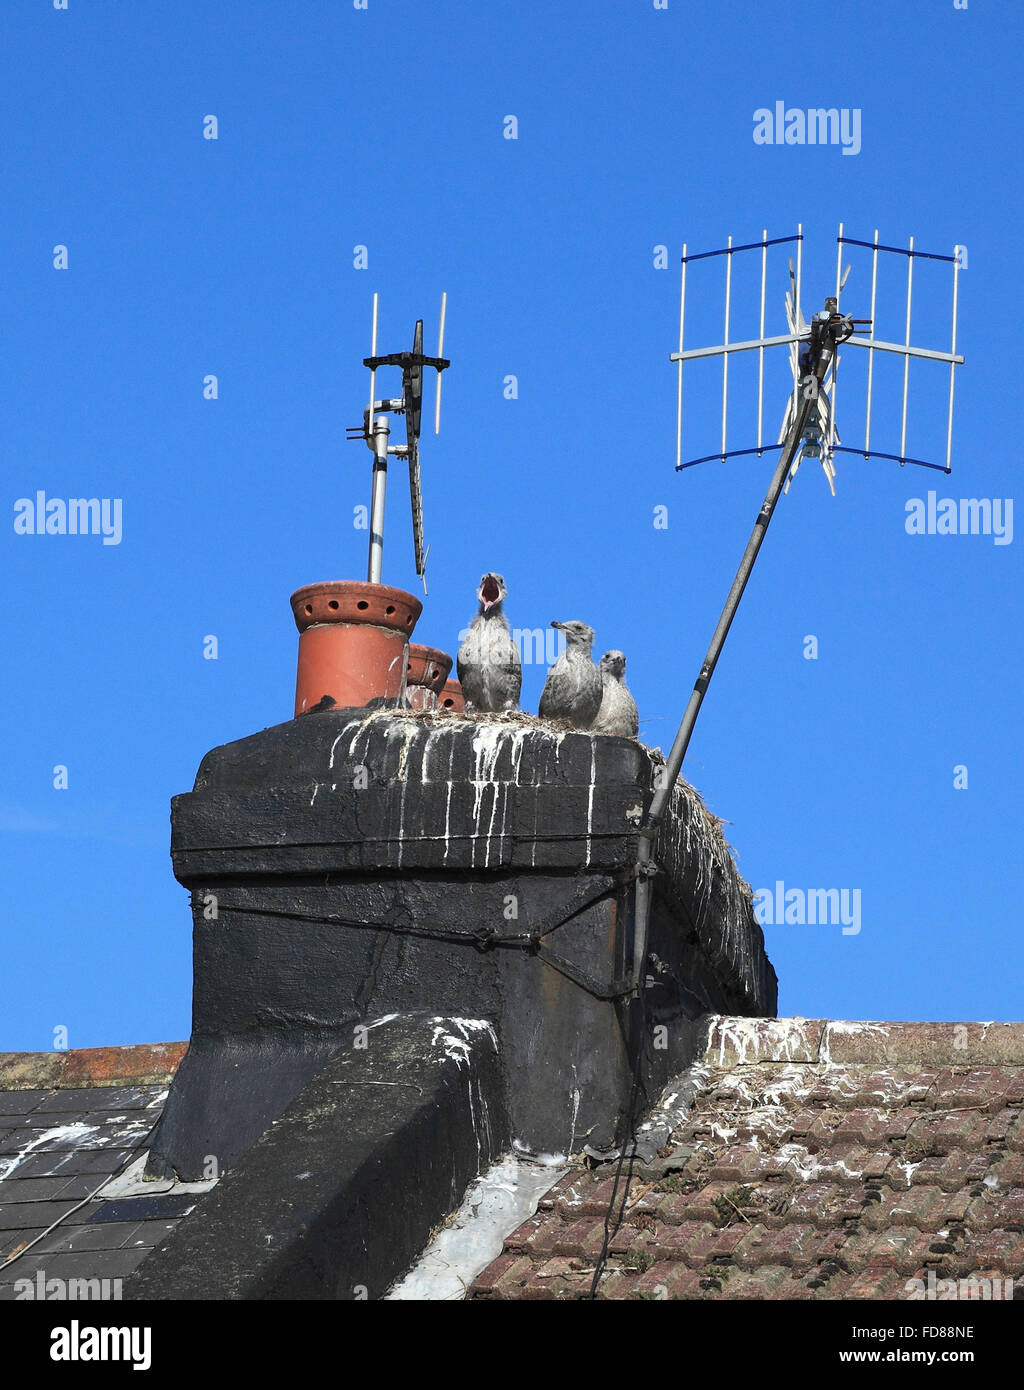 Three seagull chicks on a rooftop chimney stack waiting to be fed - Stock Image